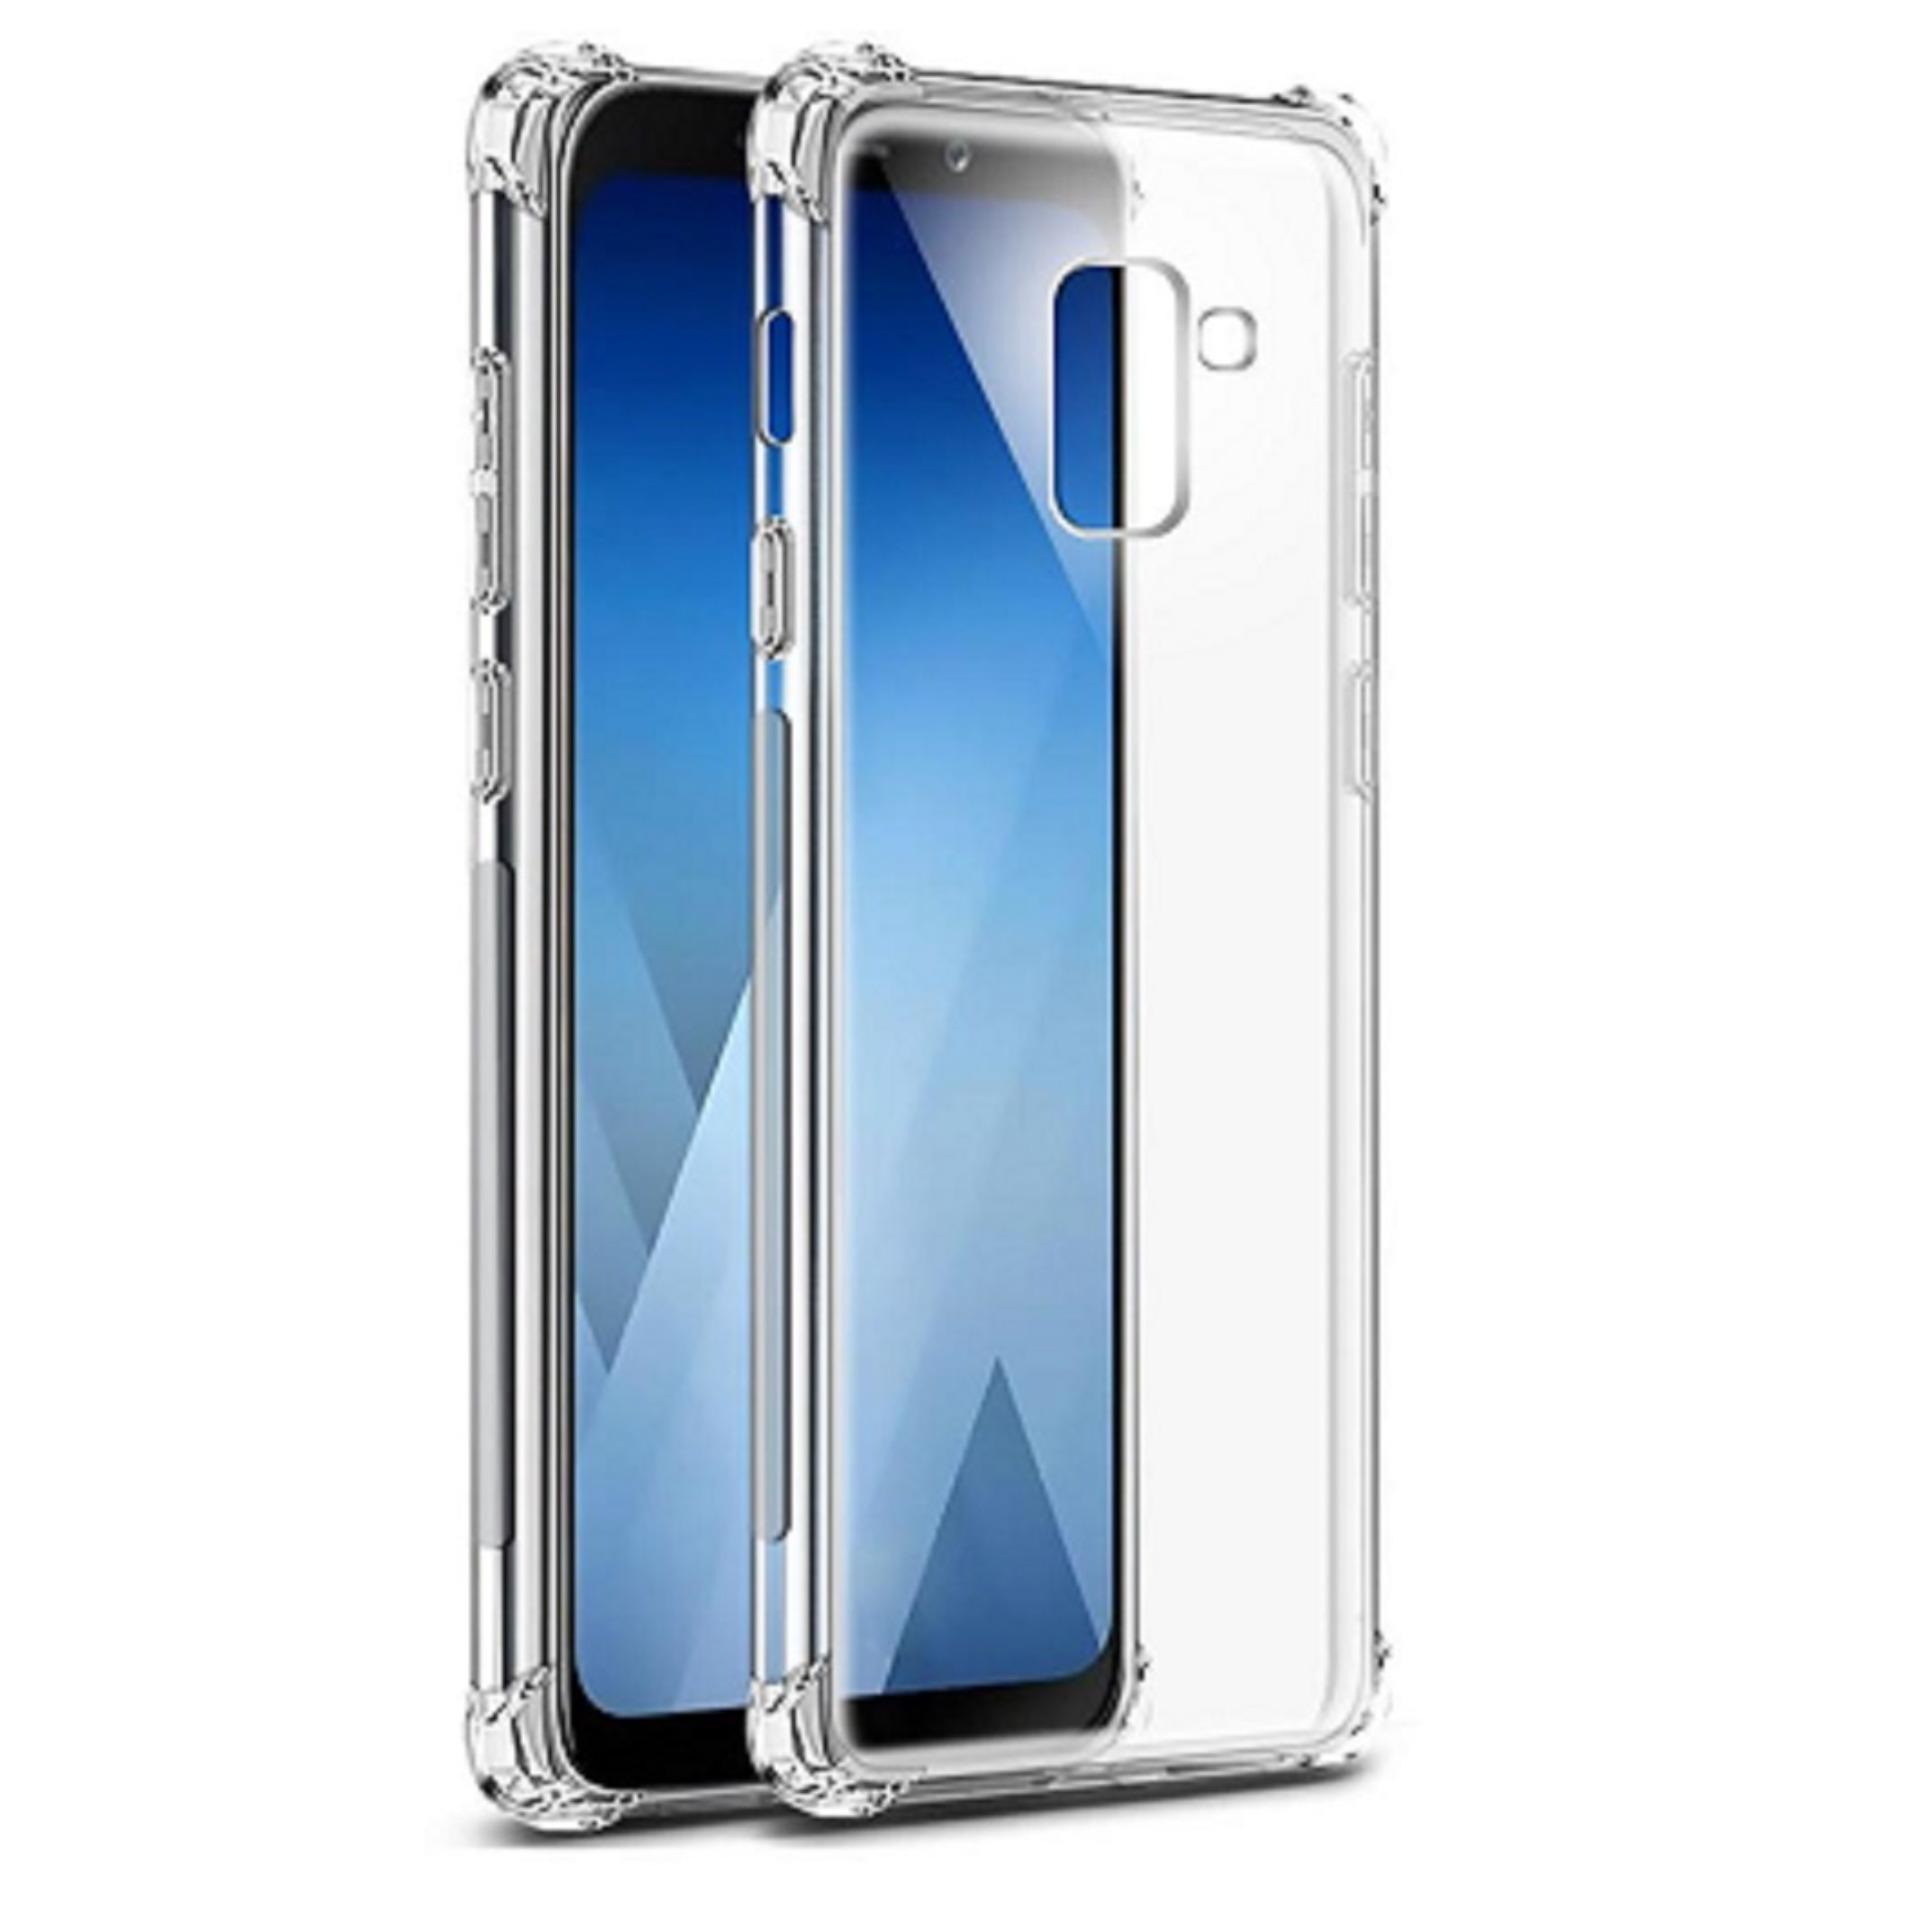 ShockCase for Samsung Galaxy A8 (2018) / A530 / A530F / 4G LTE / Duos | Premium Softcase Jelly Anti Crack Shockproof - Transparan